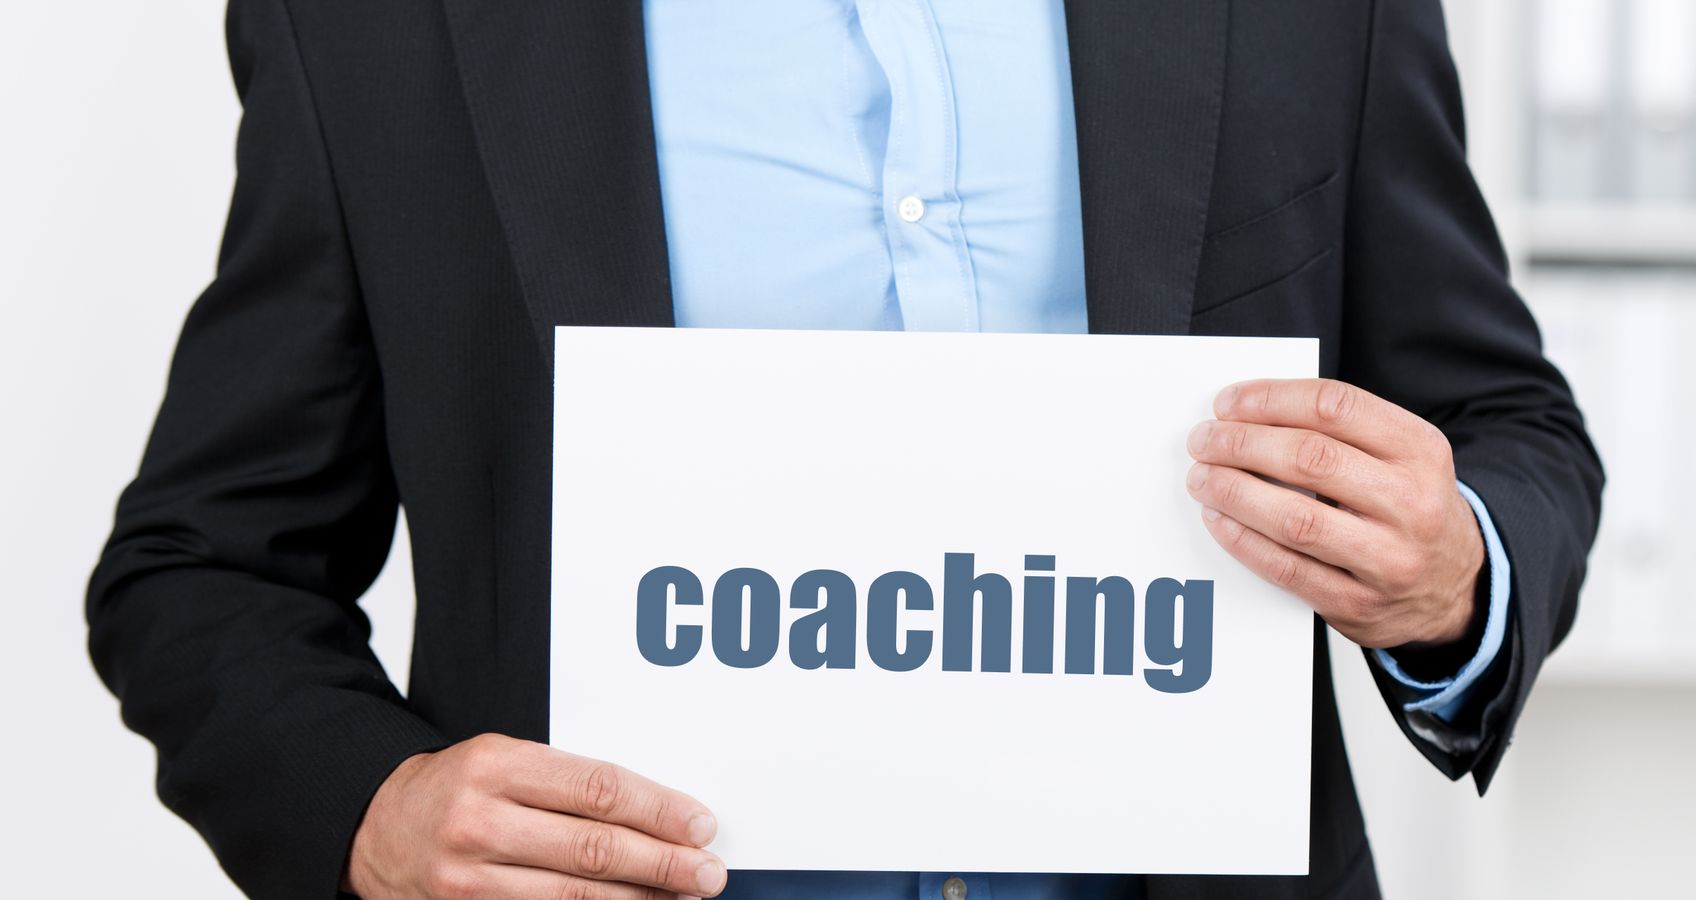 are-you-committed-to-your-employees-success-teaching-vs-coaching-your-employees